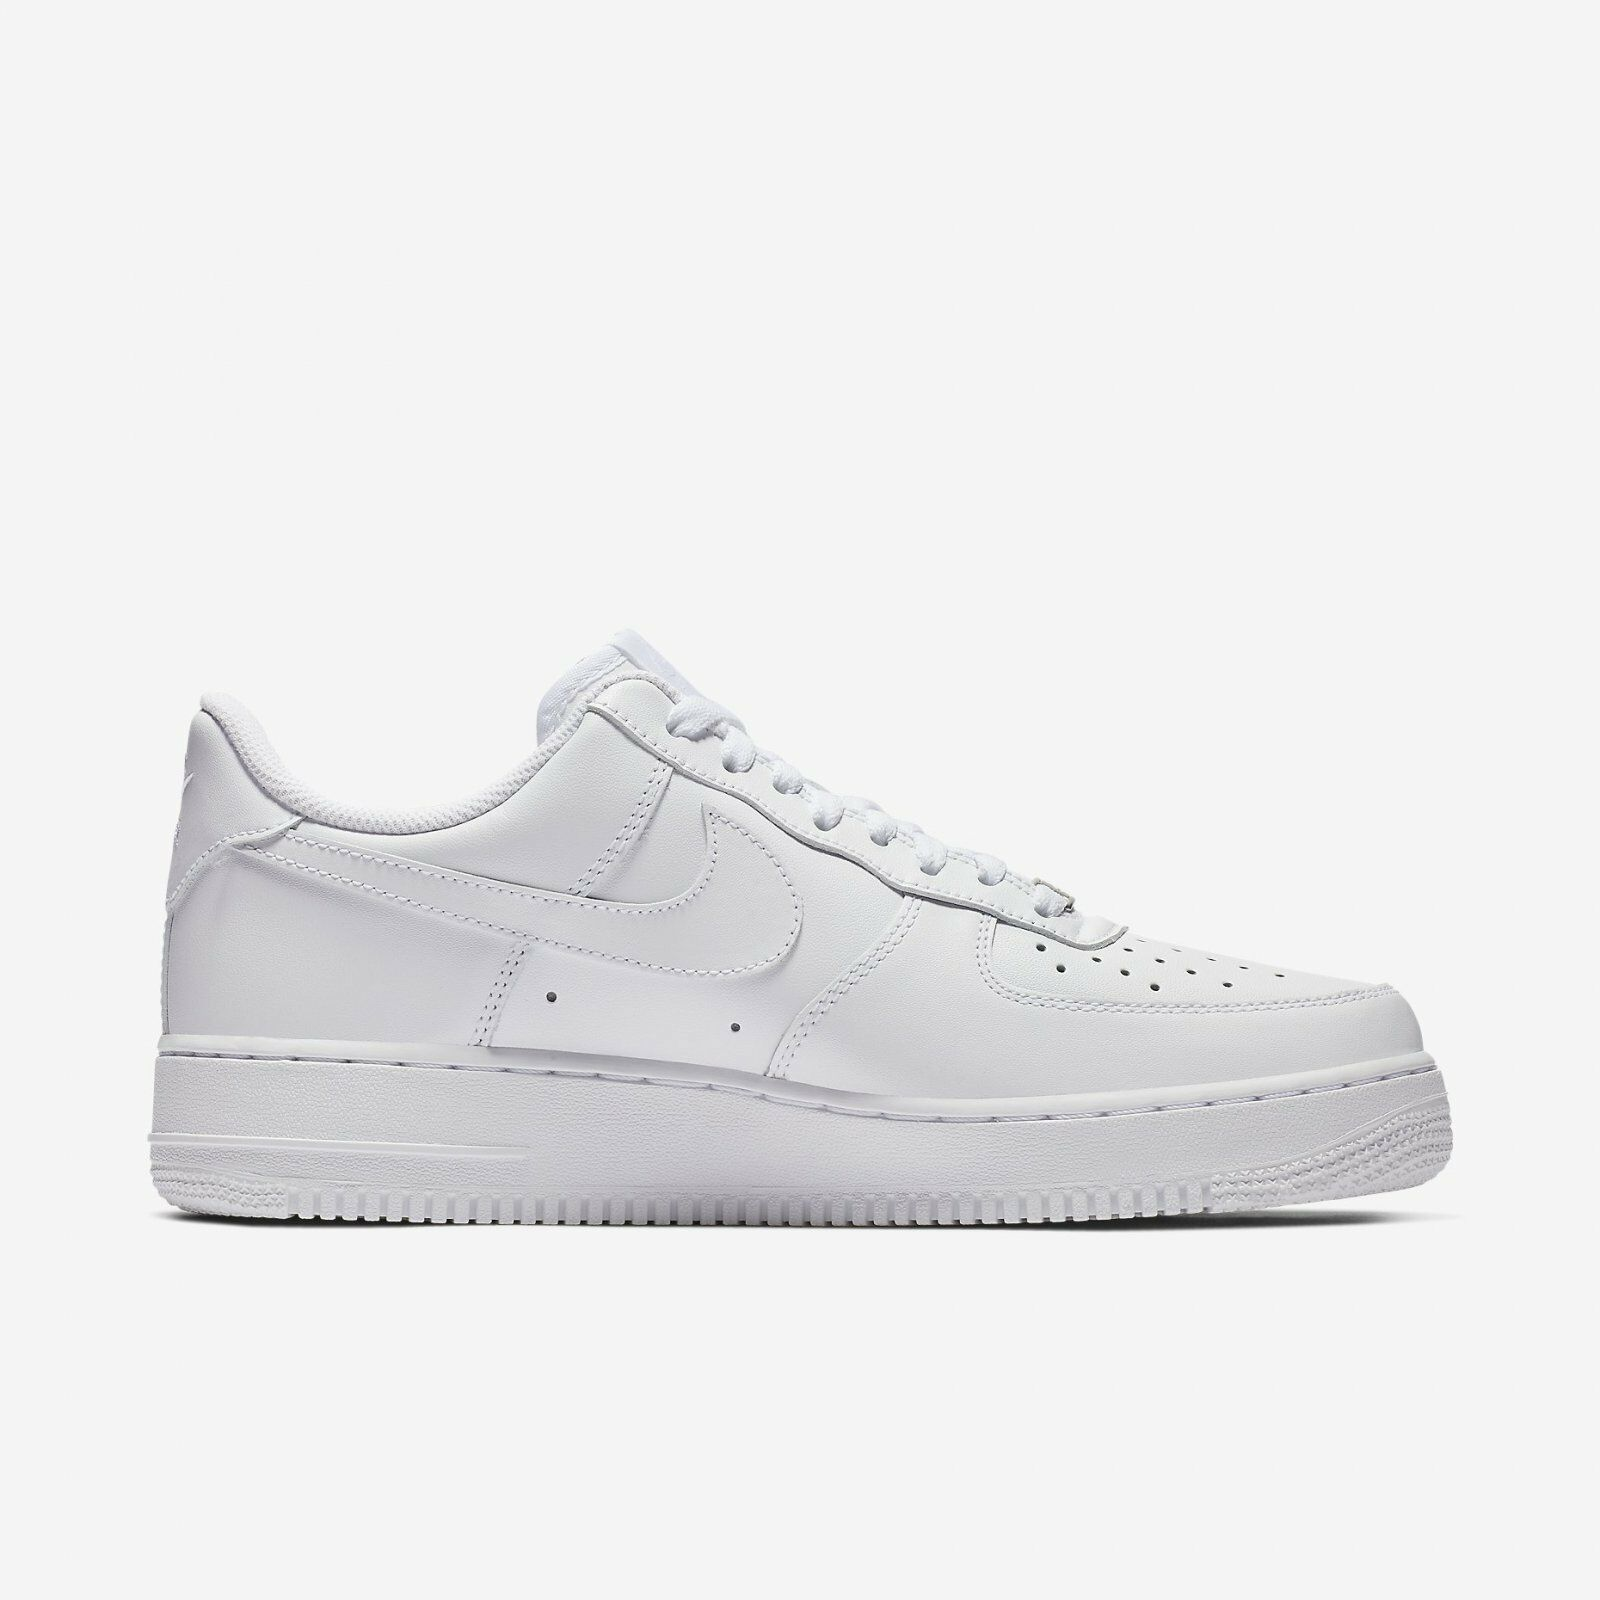 Nike Women's Air Force 1 '07 Triple White 2019 Casual Shoes WMNS New 315115-112 1